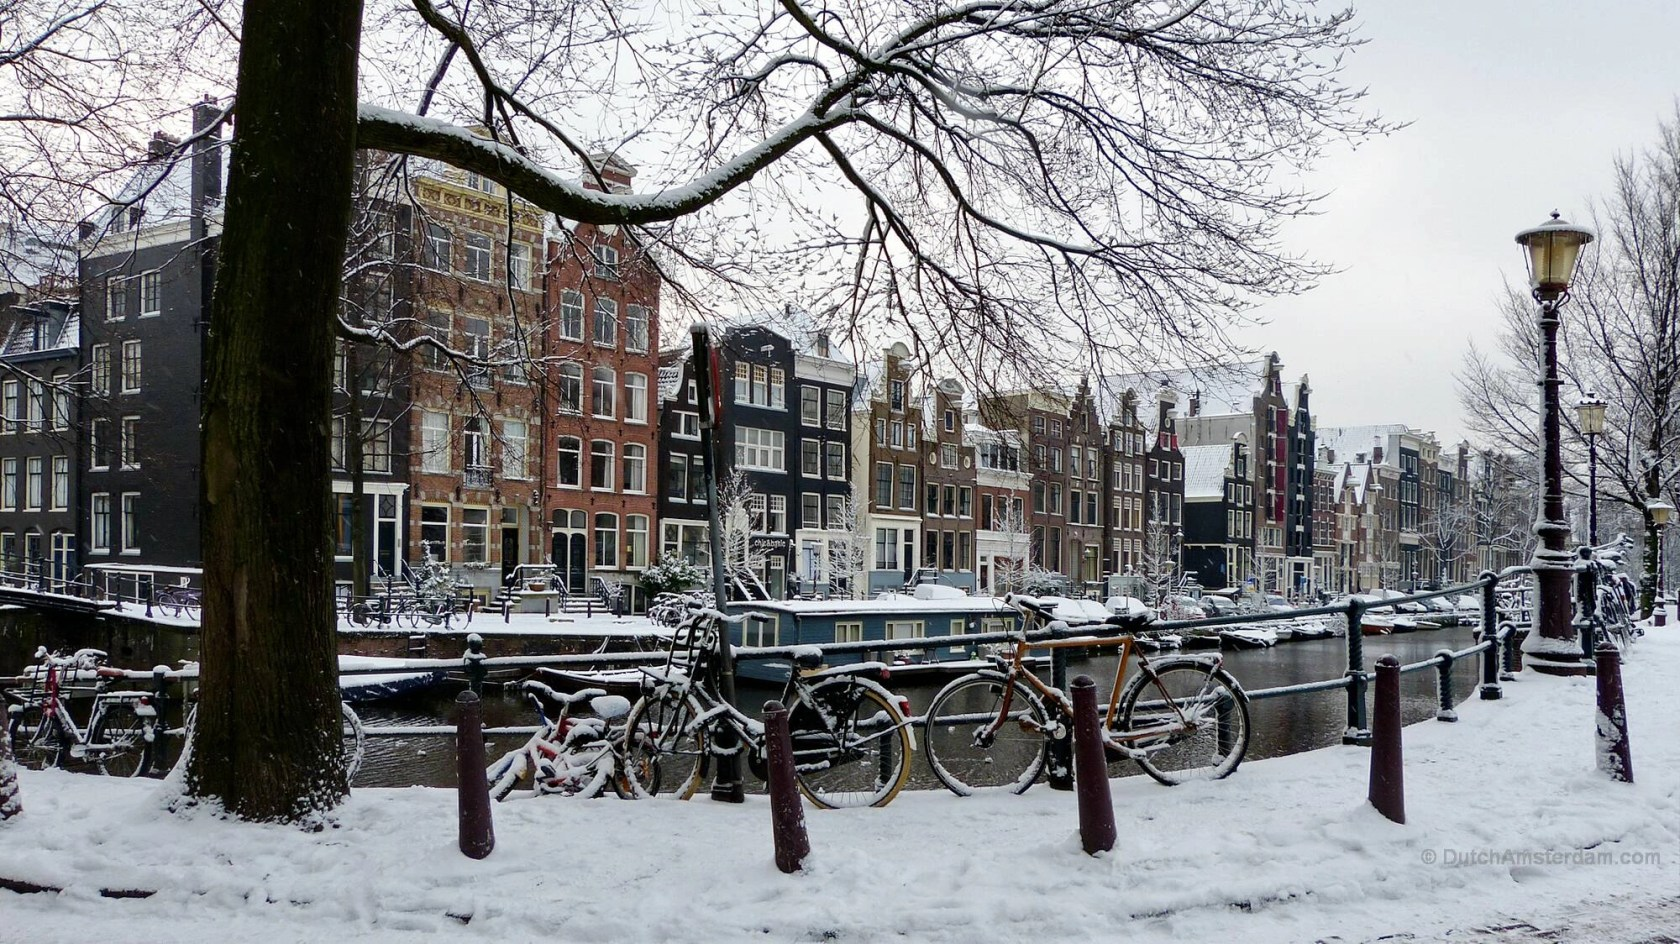 Herengracht in Amsterdam, in the snow